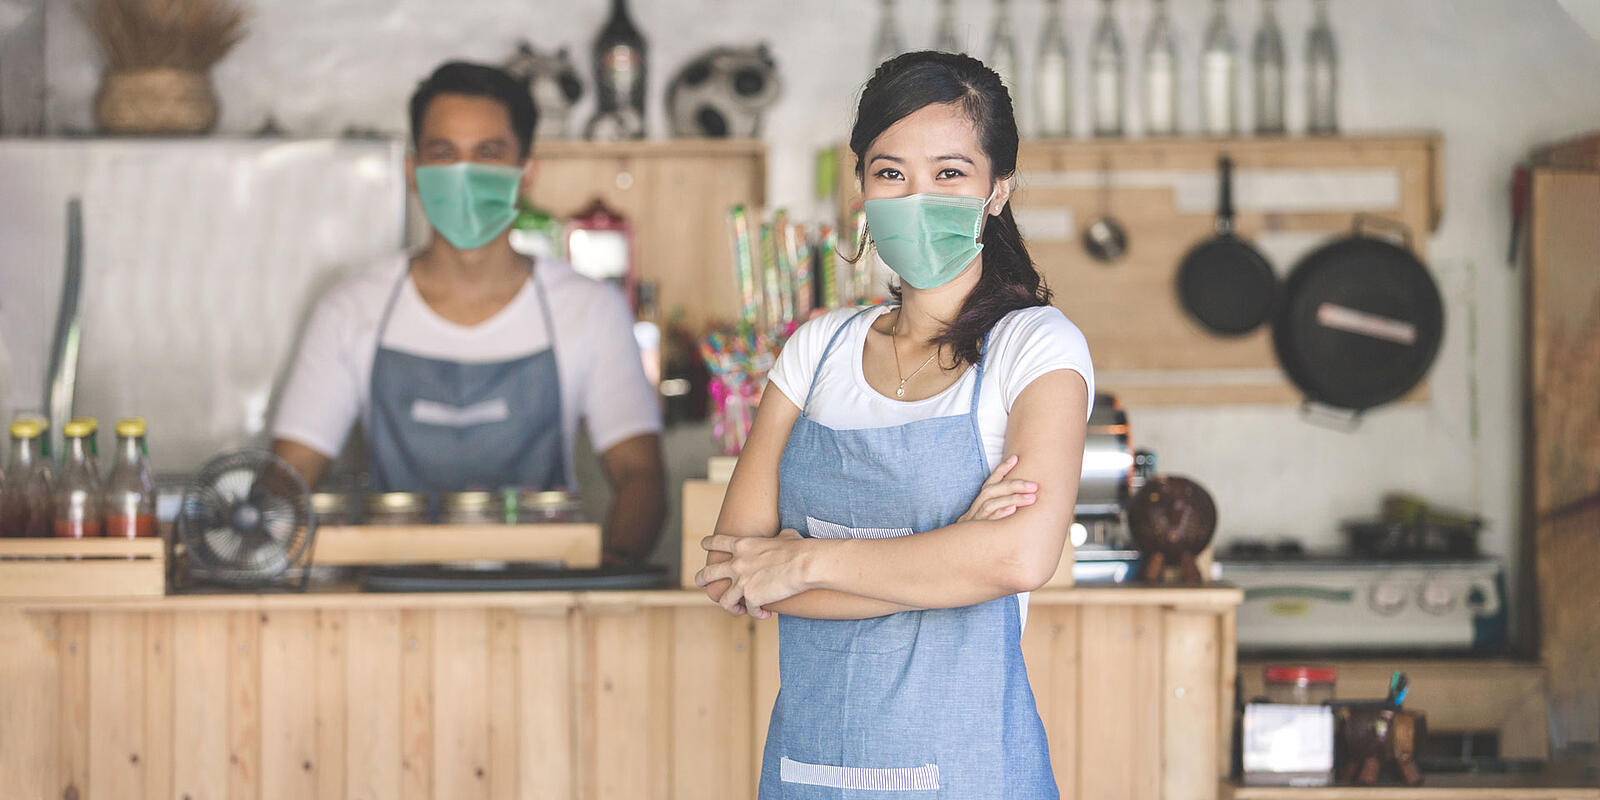 Building faith: how restaurants can attract consumers back